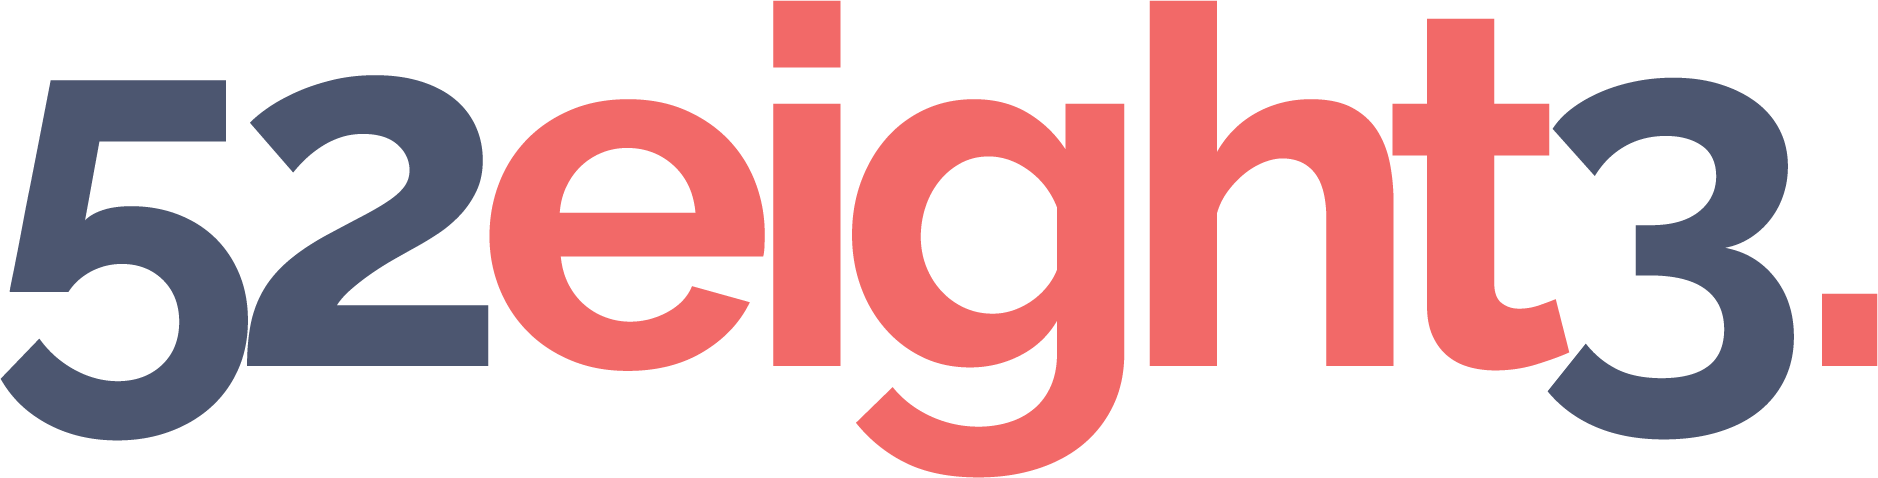 52eight3-logo-pink.png